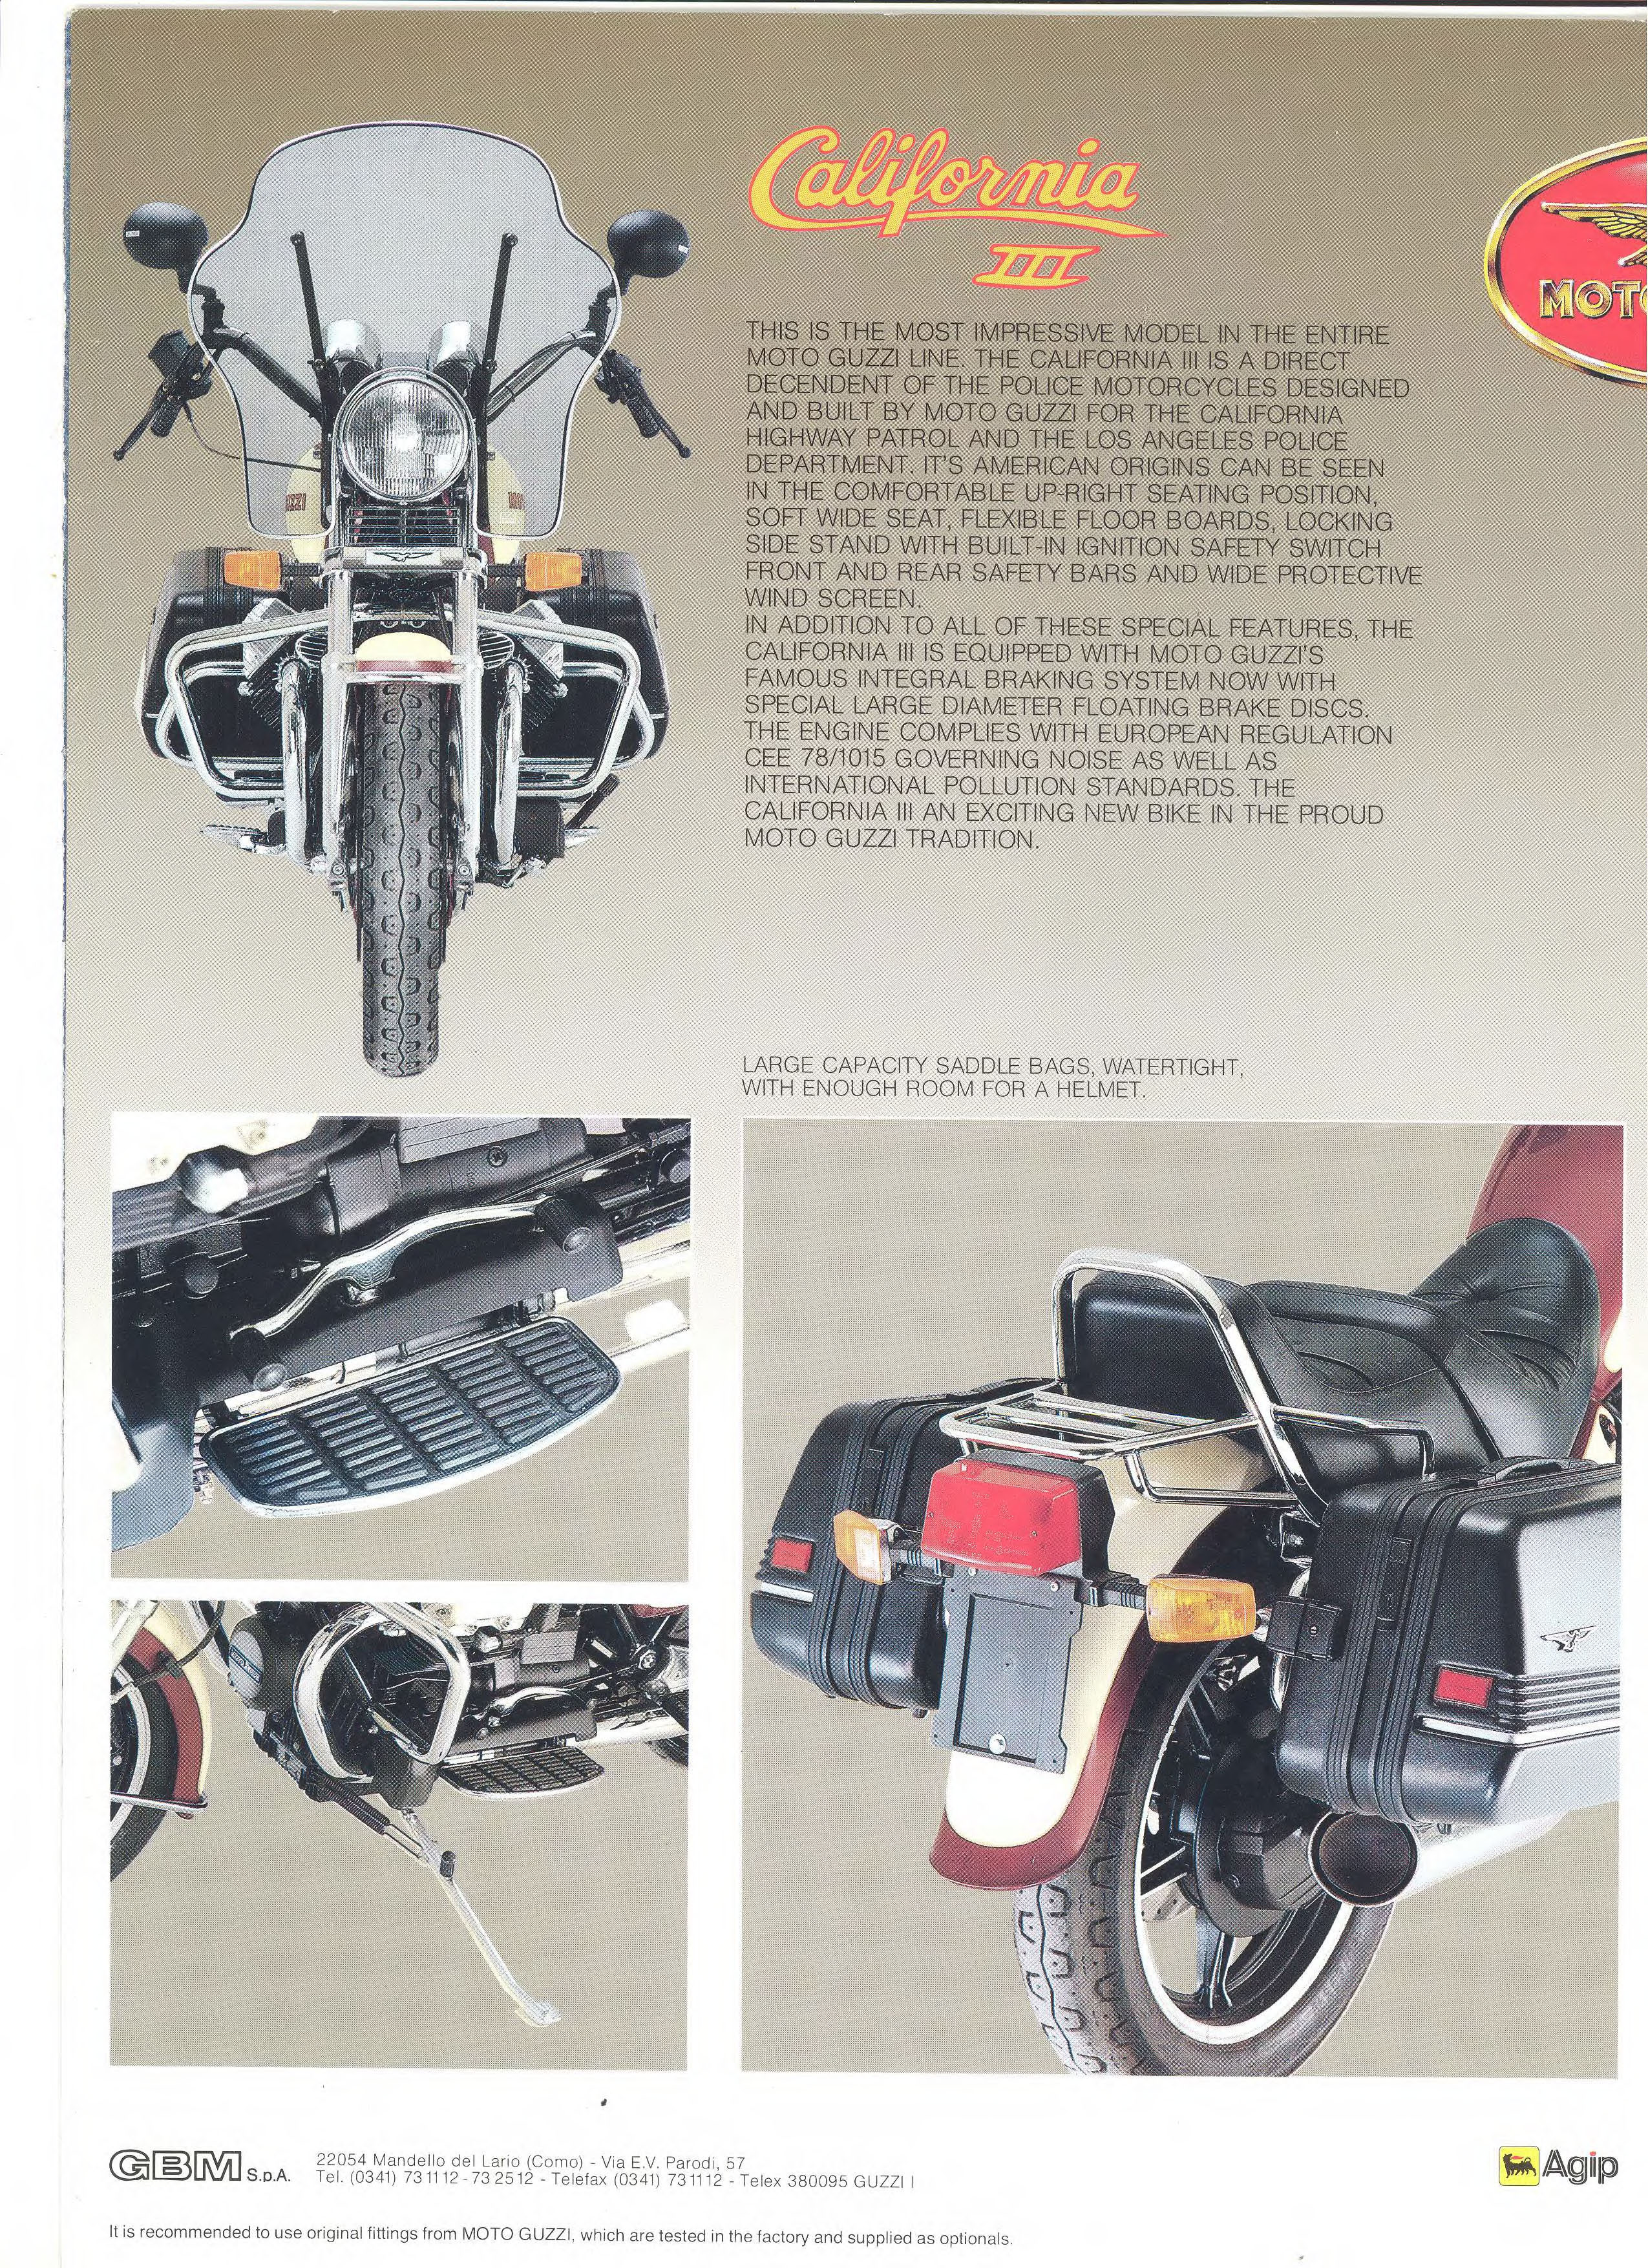 Moto Guzzi factory brochure: California III 1987